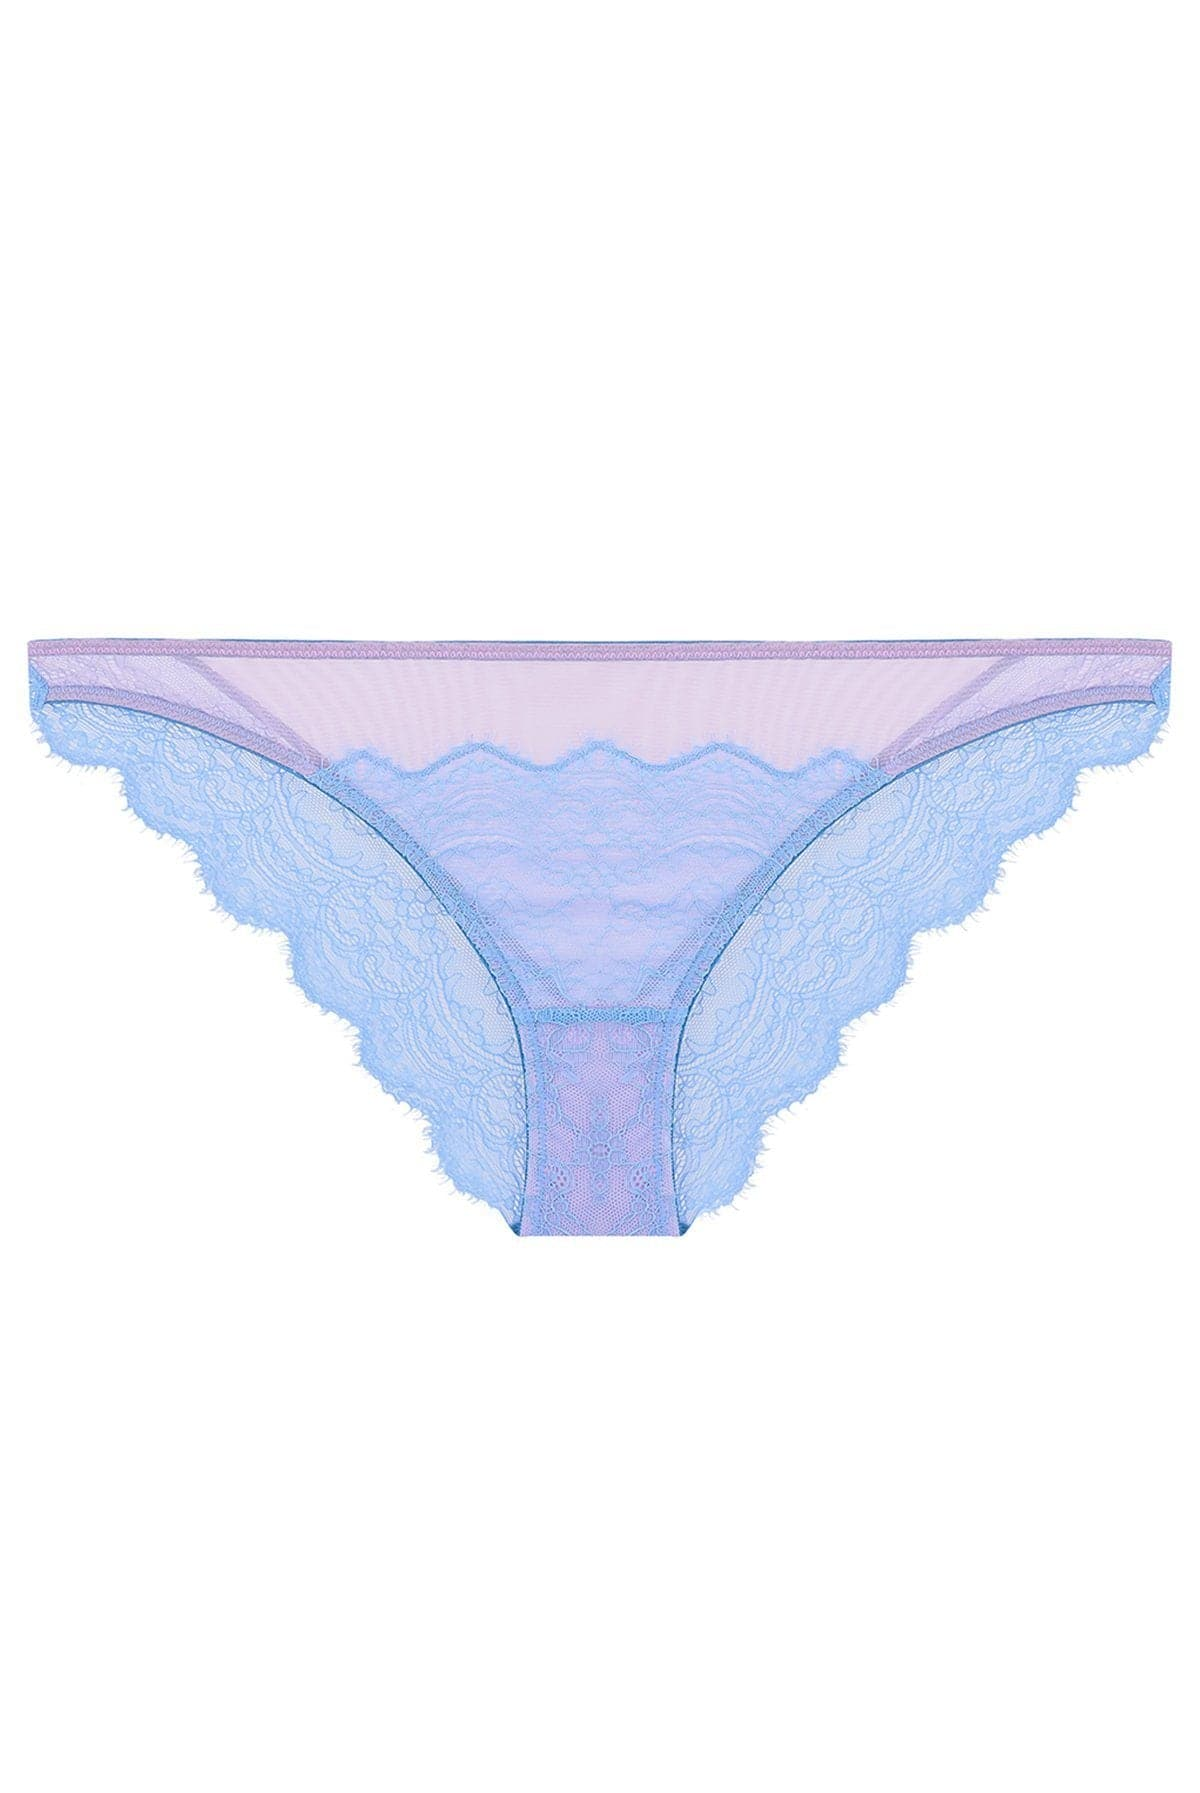 dora larsen brief blue lace jessica womanhood